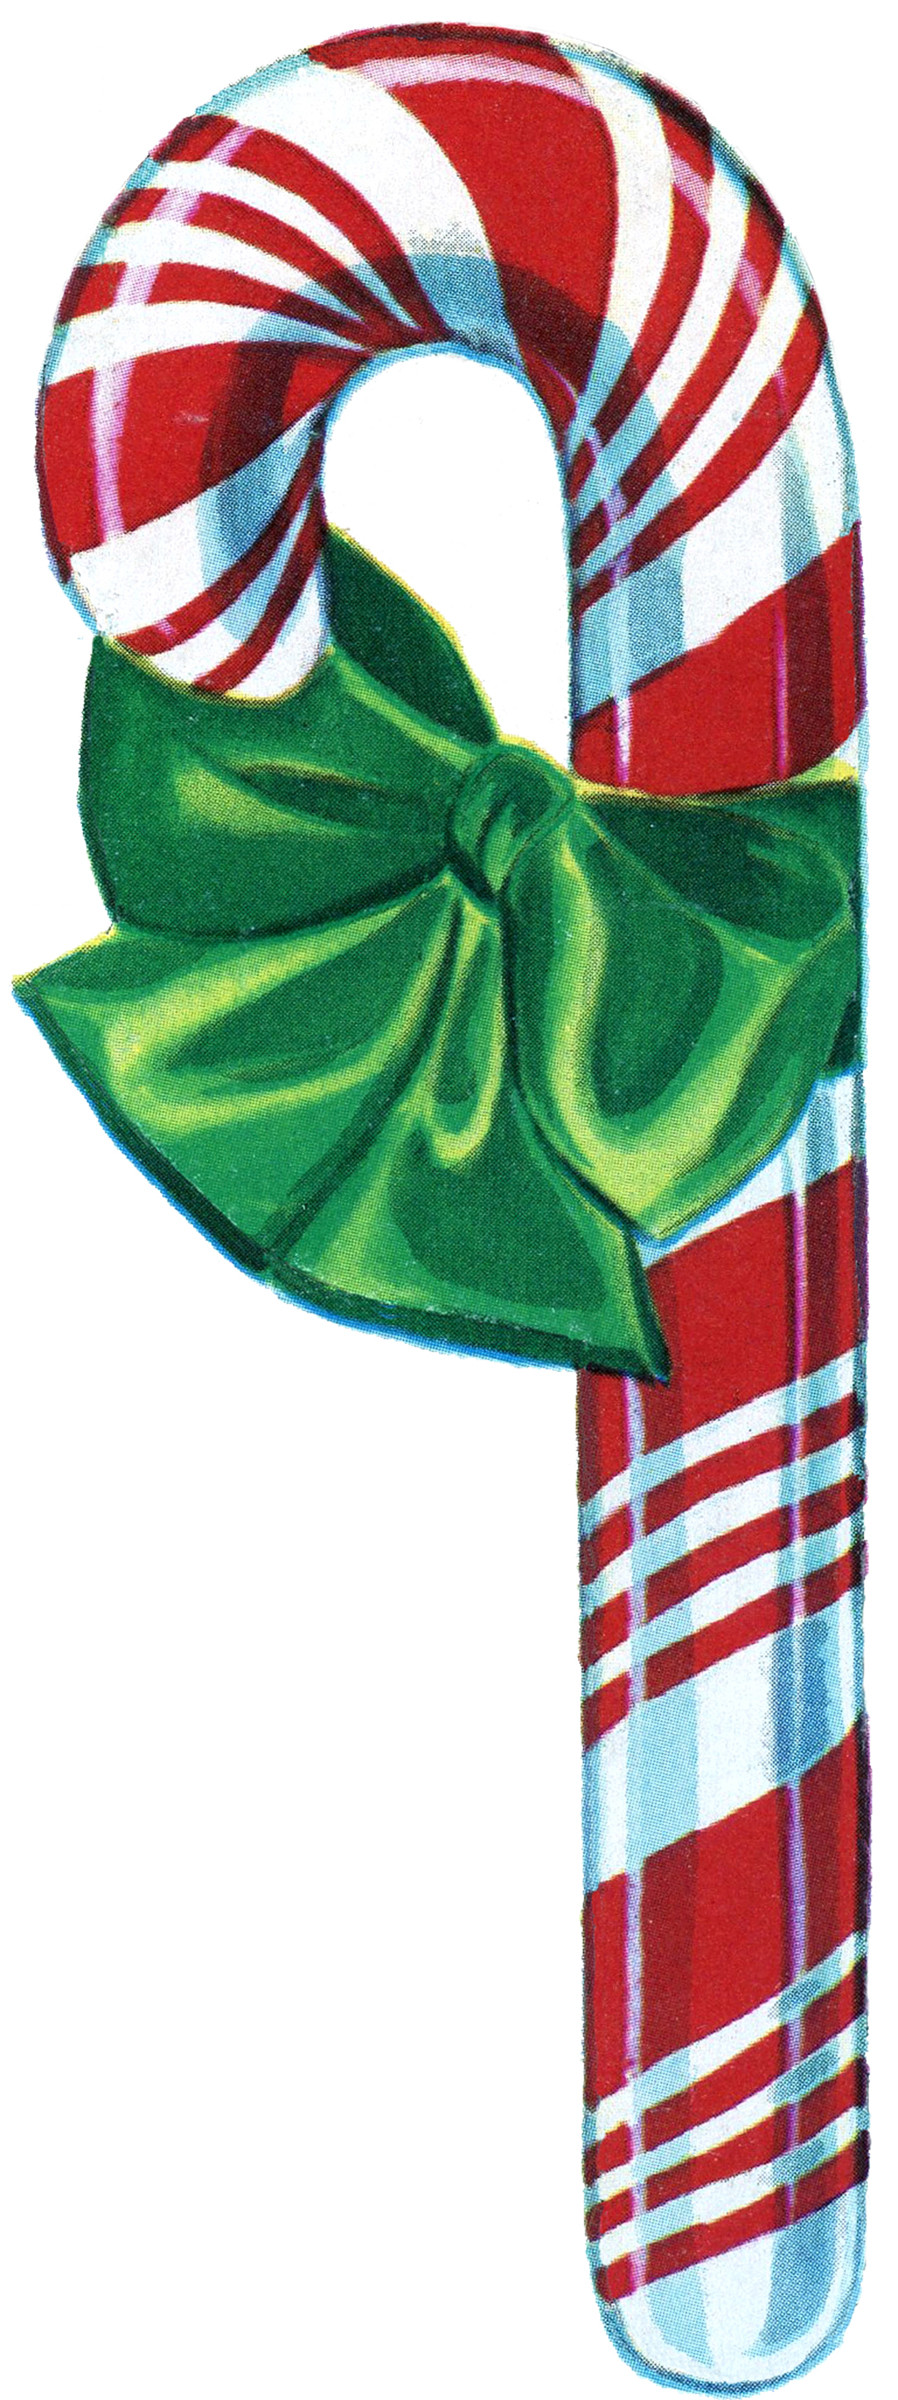 Christmas Candy Cane  Free Vintage Christmas Clip Art Candy Cane The